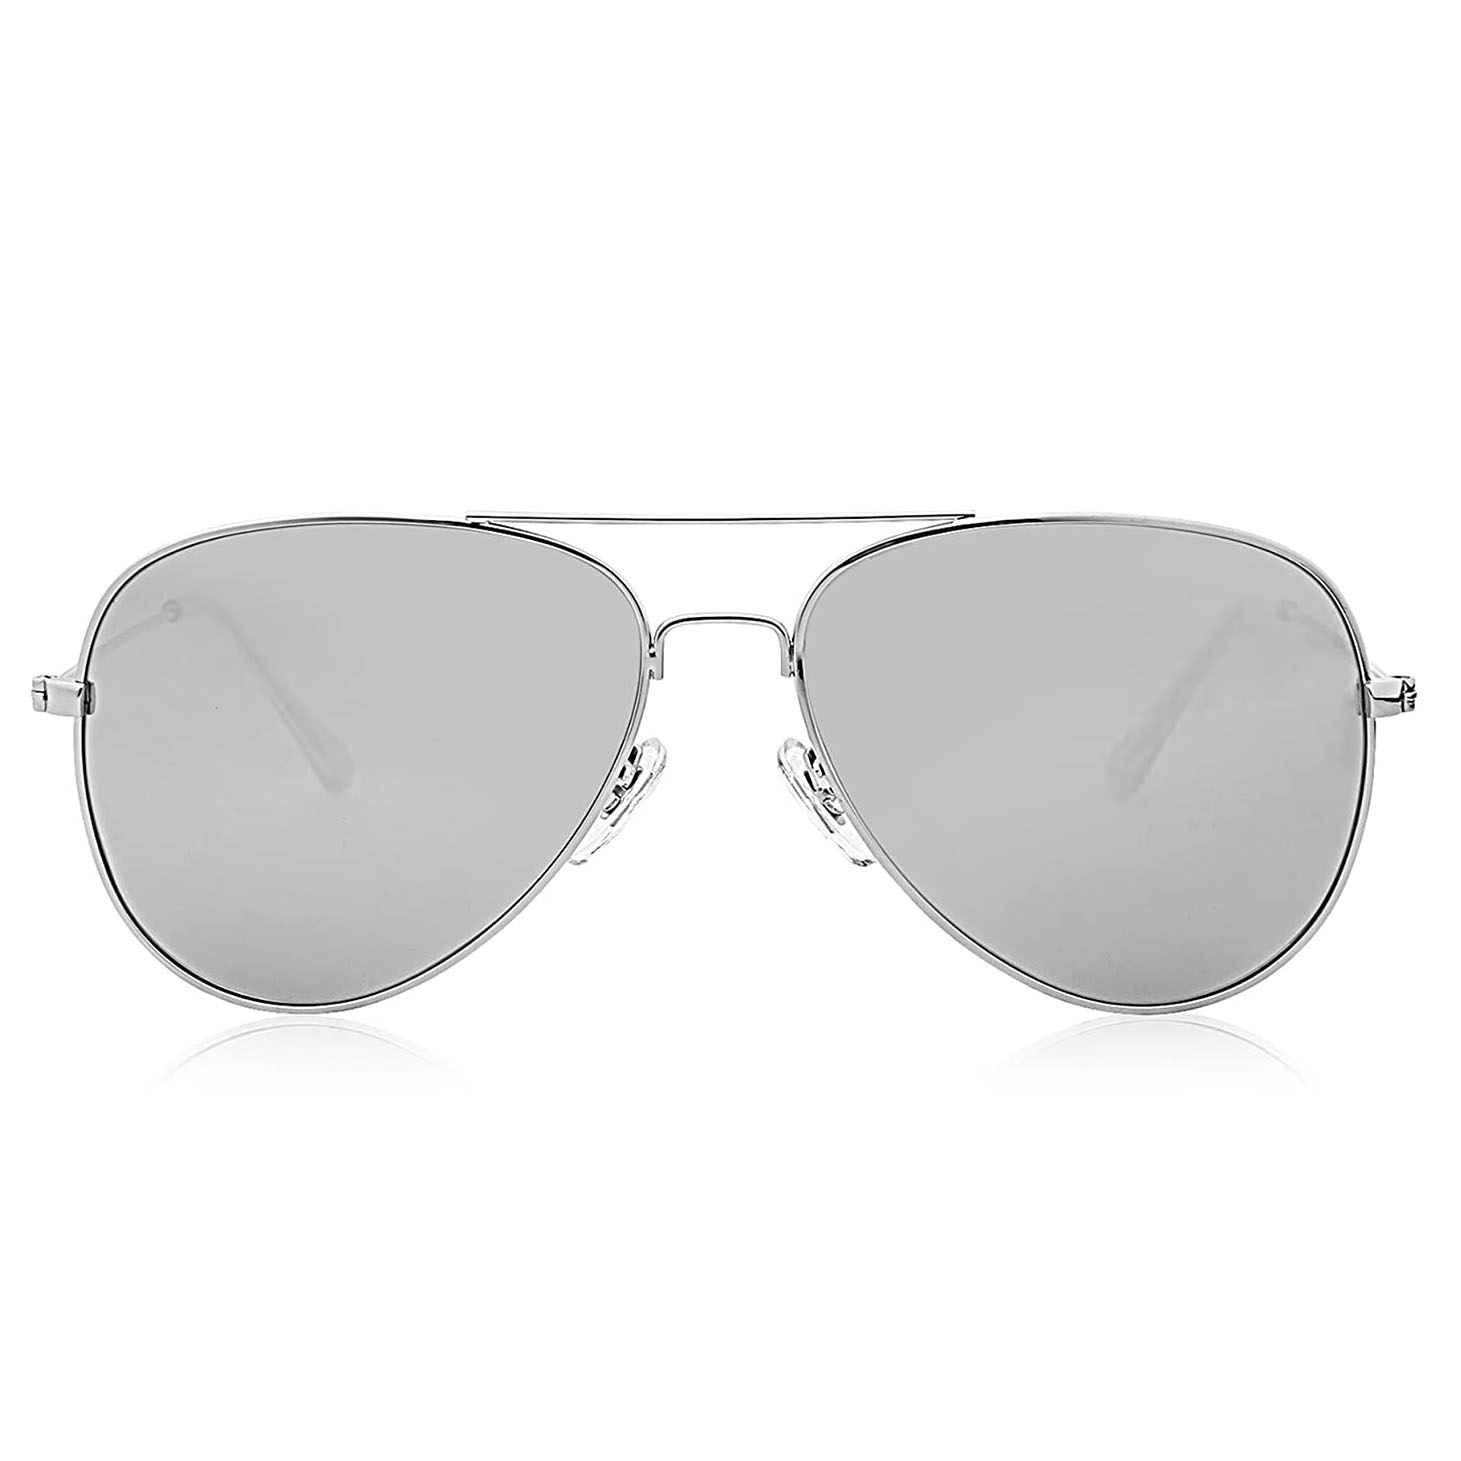 SOJOS Aviator Polarized Sunglasses